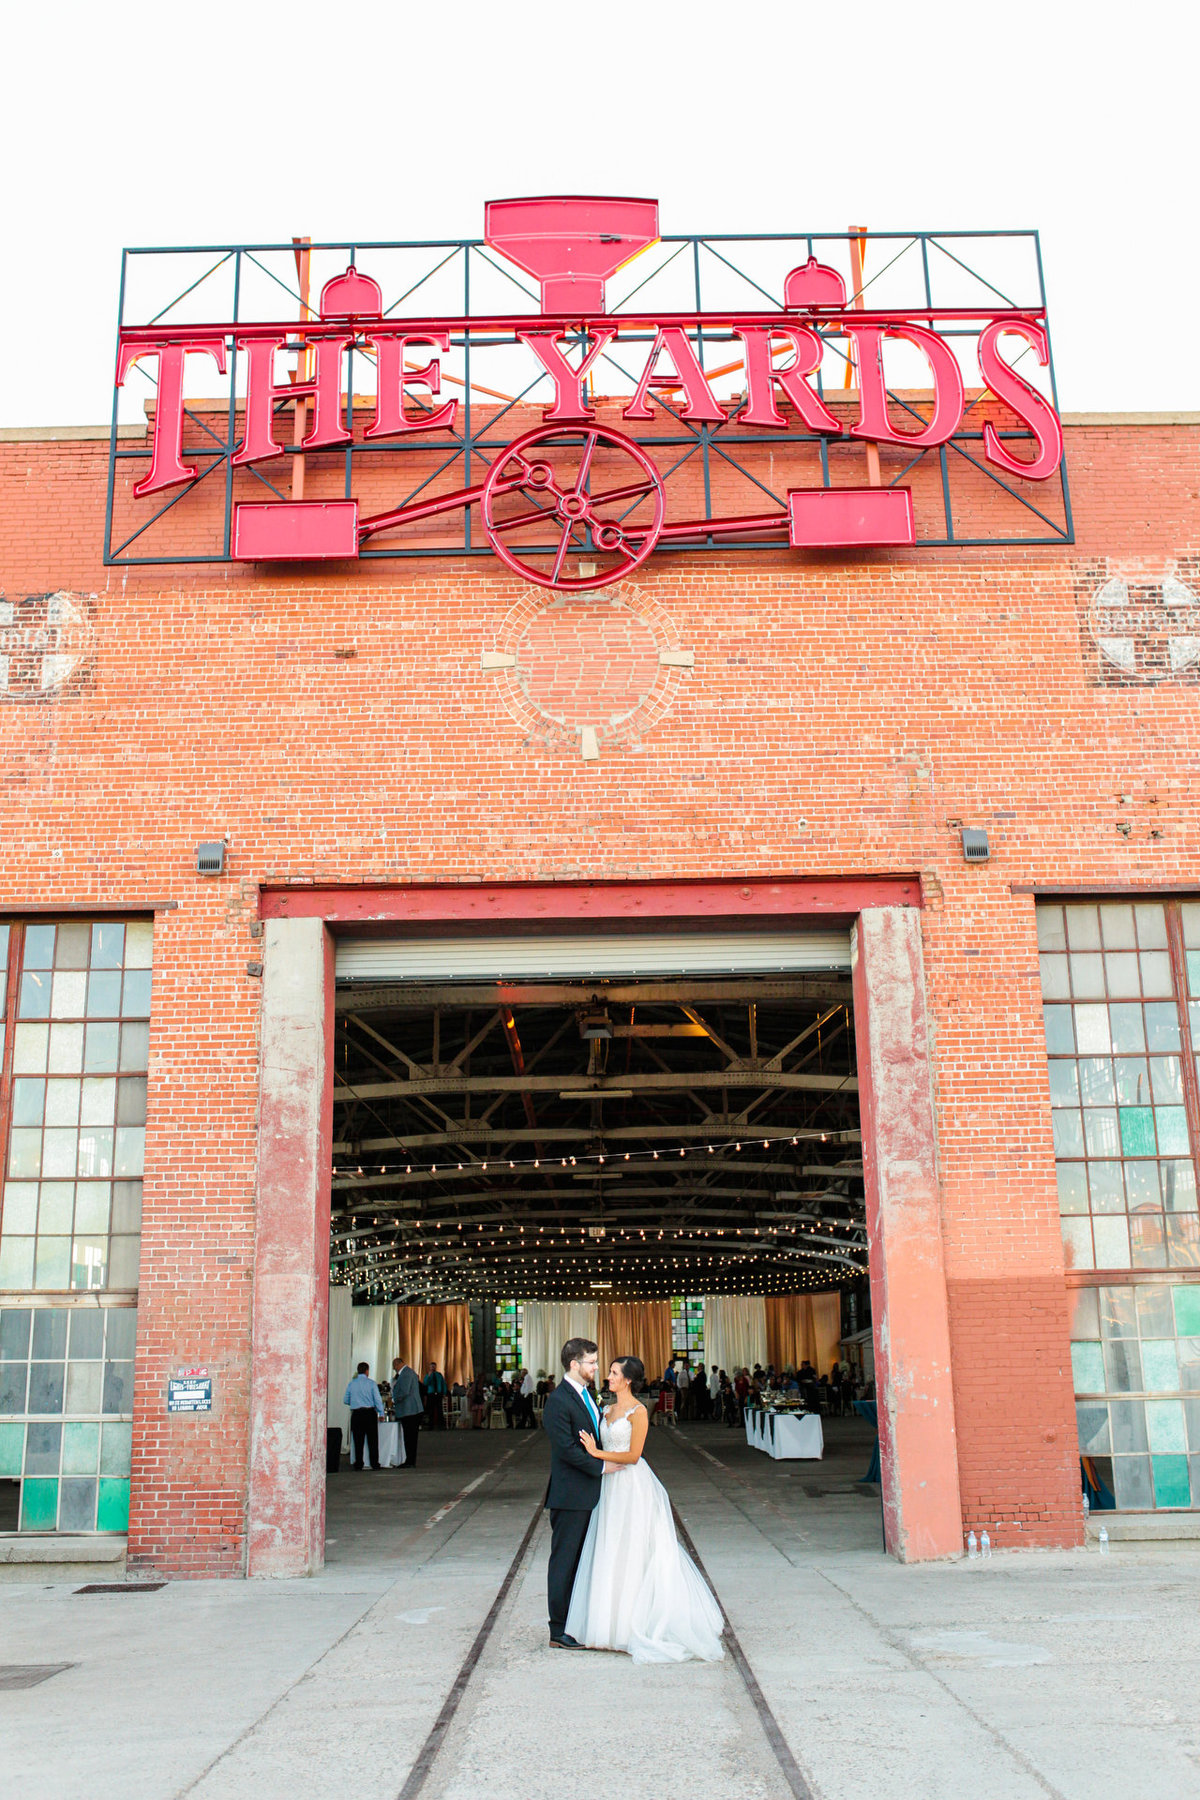 Albuquerque Wedding Photographer_Abq Rail Yards Reception_www.tylerbrooke.com_046